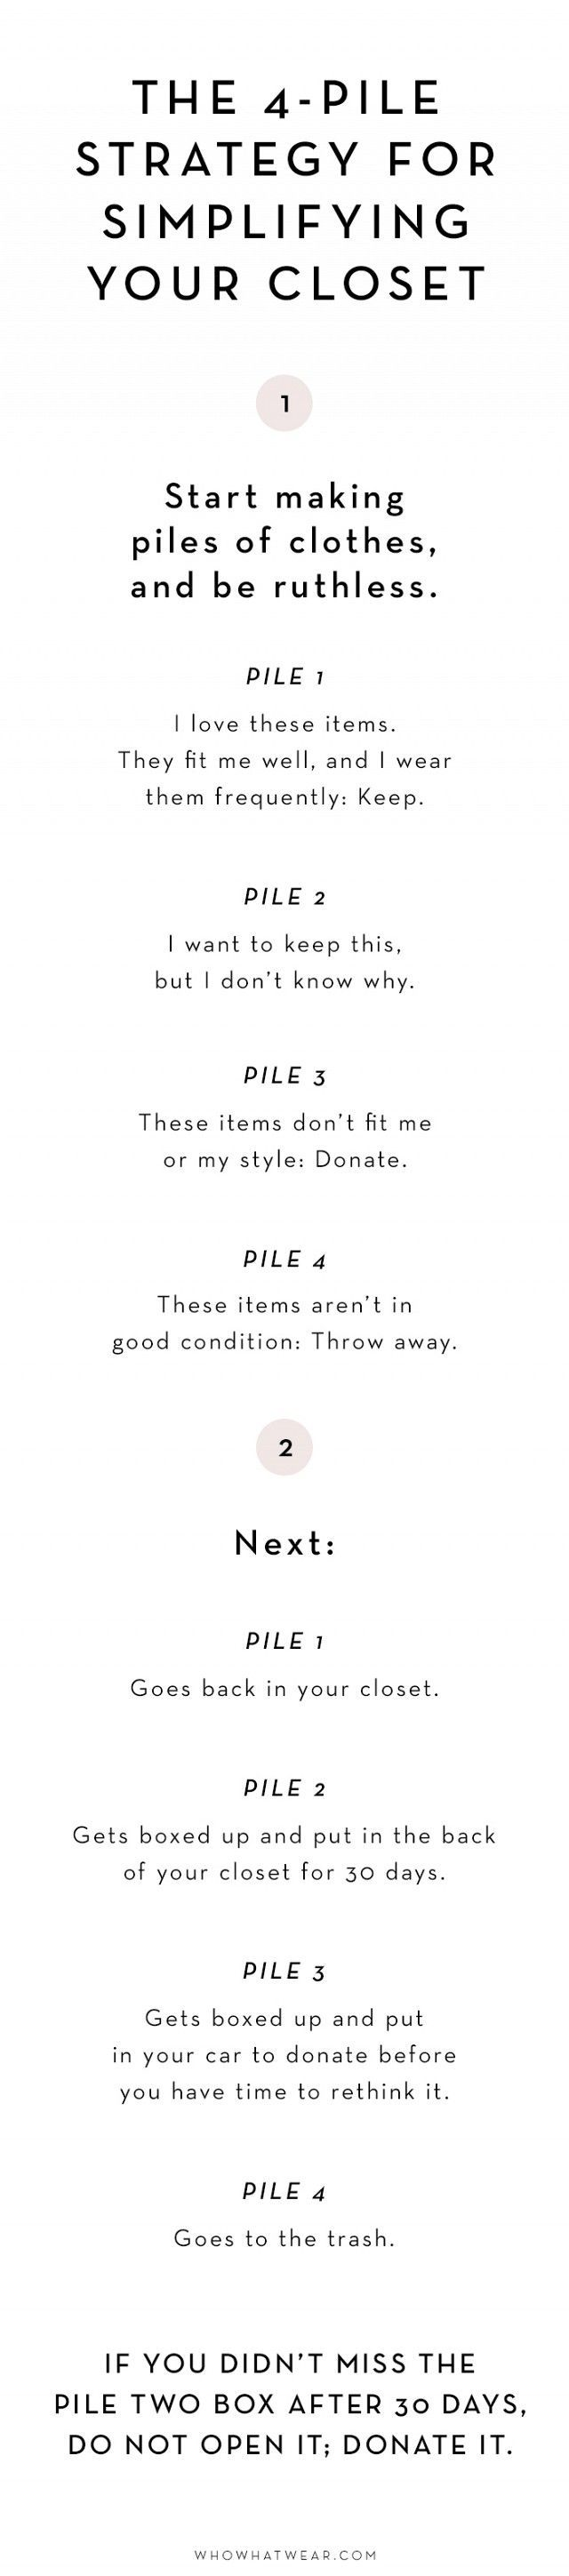 Maximize your closet through minimalism:  4-Pile Strategy for Simplifying Your Wardrobe | WhoWhatWear